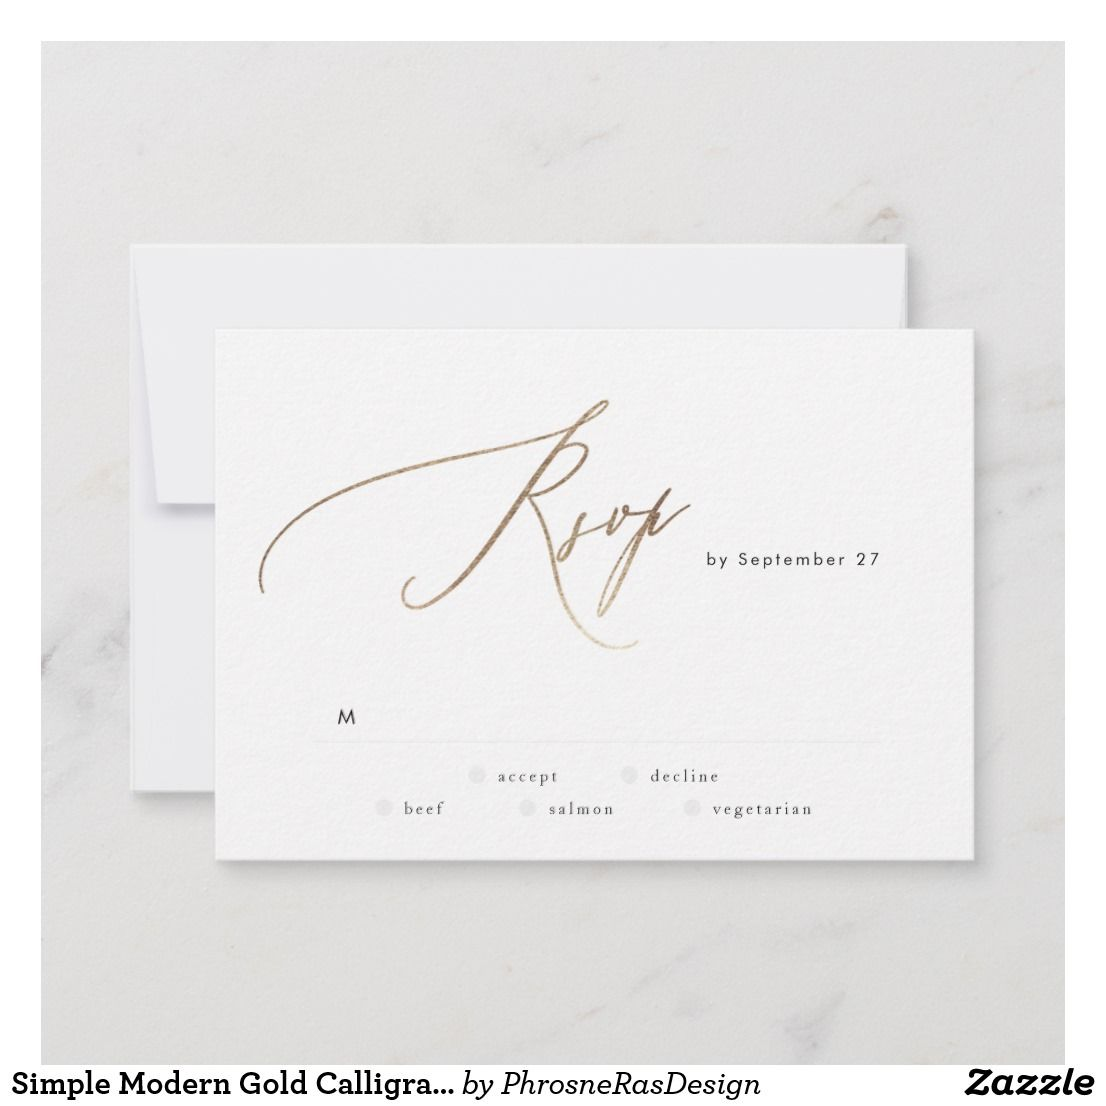 Simple Modern Gold Calligraphy Wedding Rsvp Card Zazzle Com In